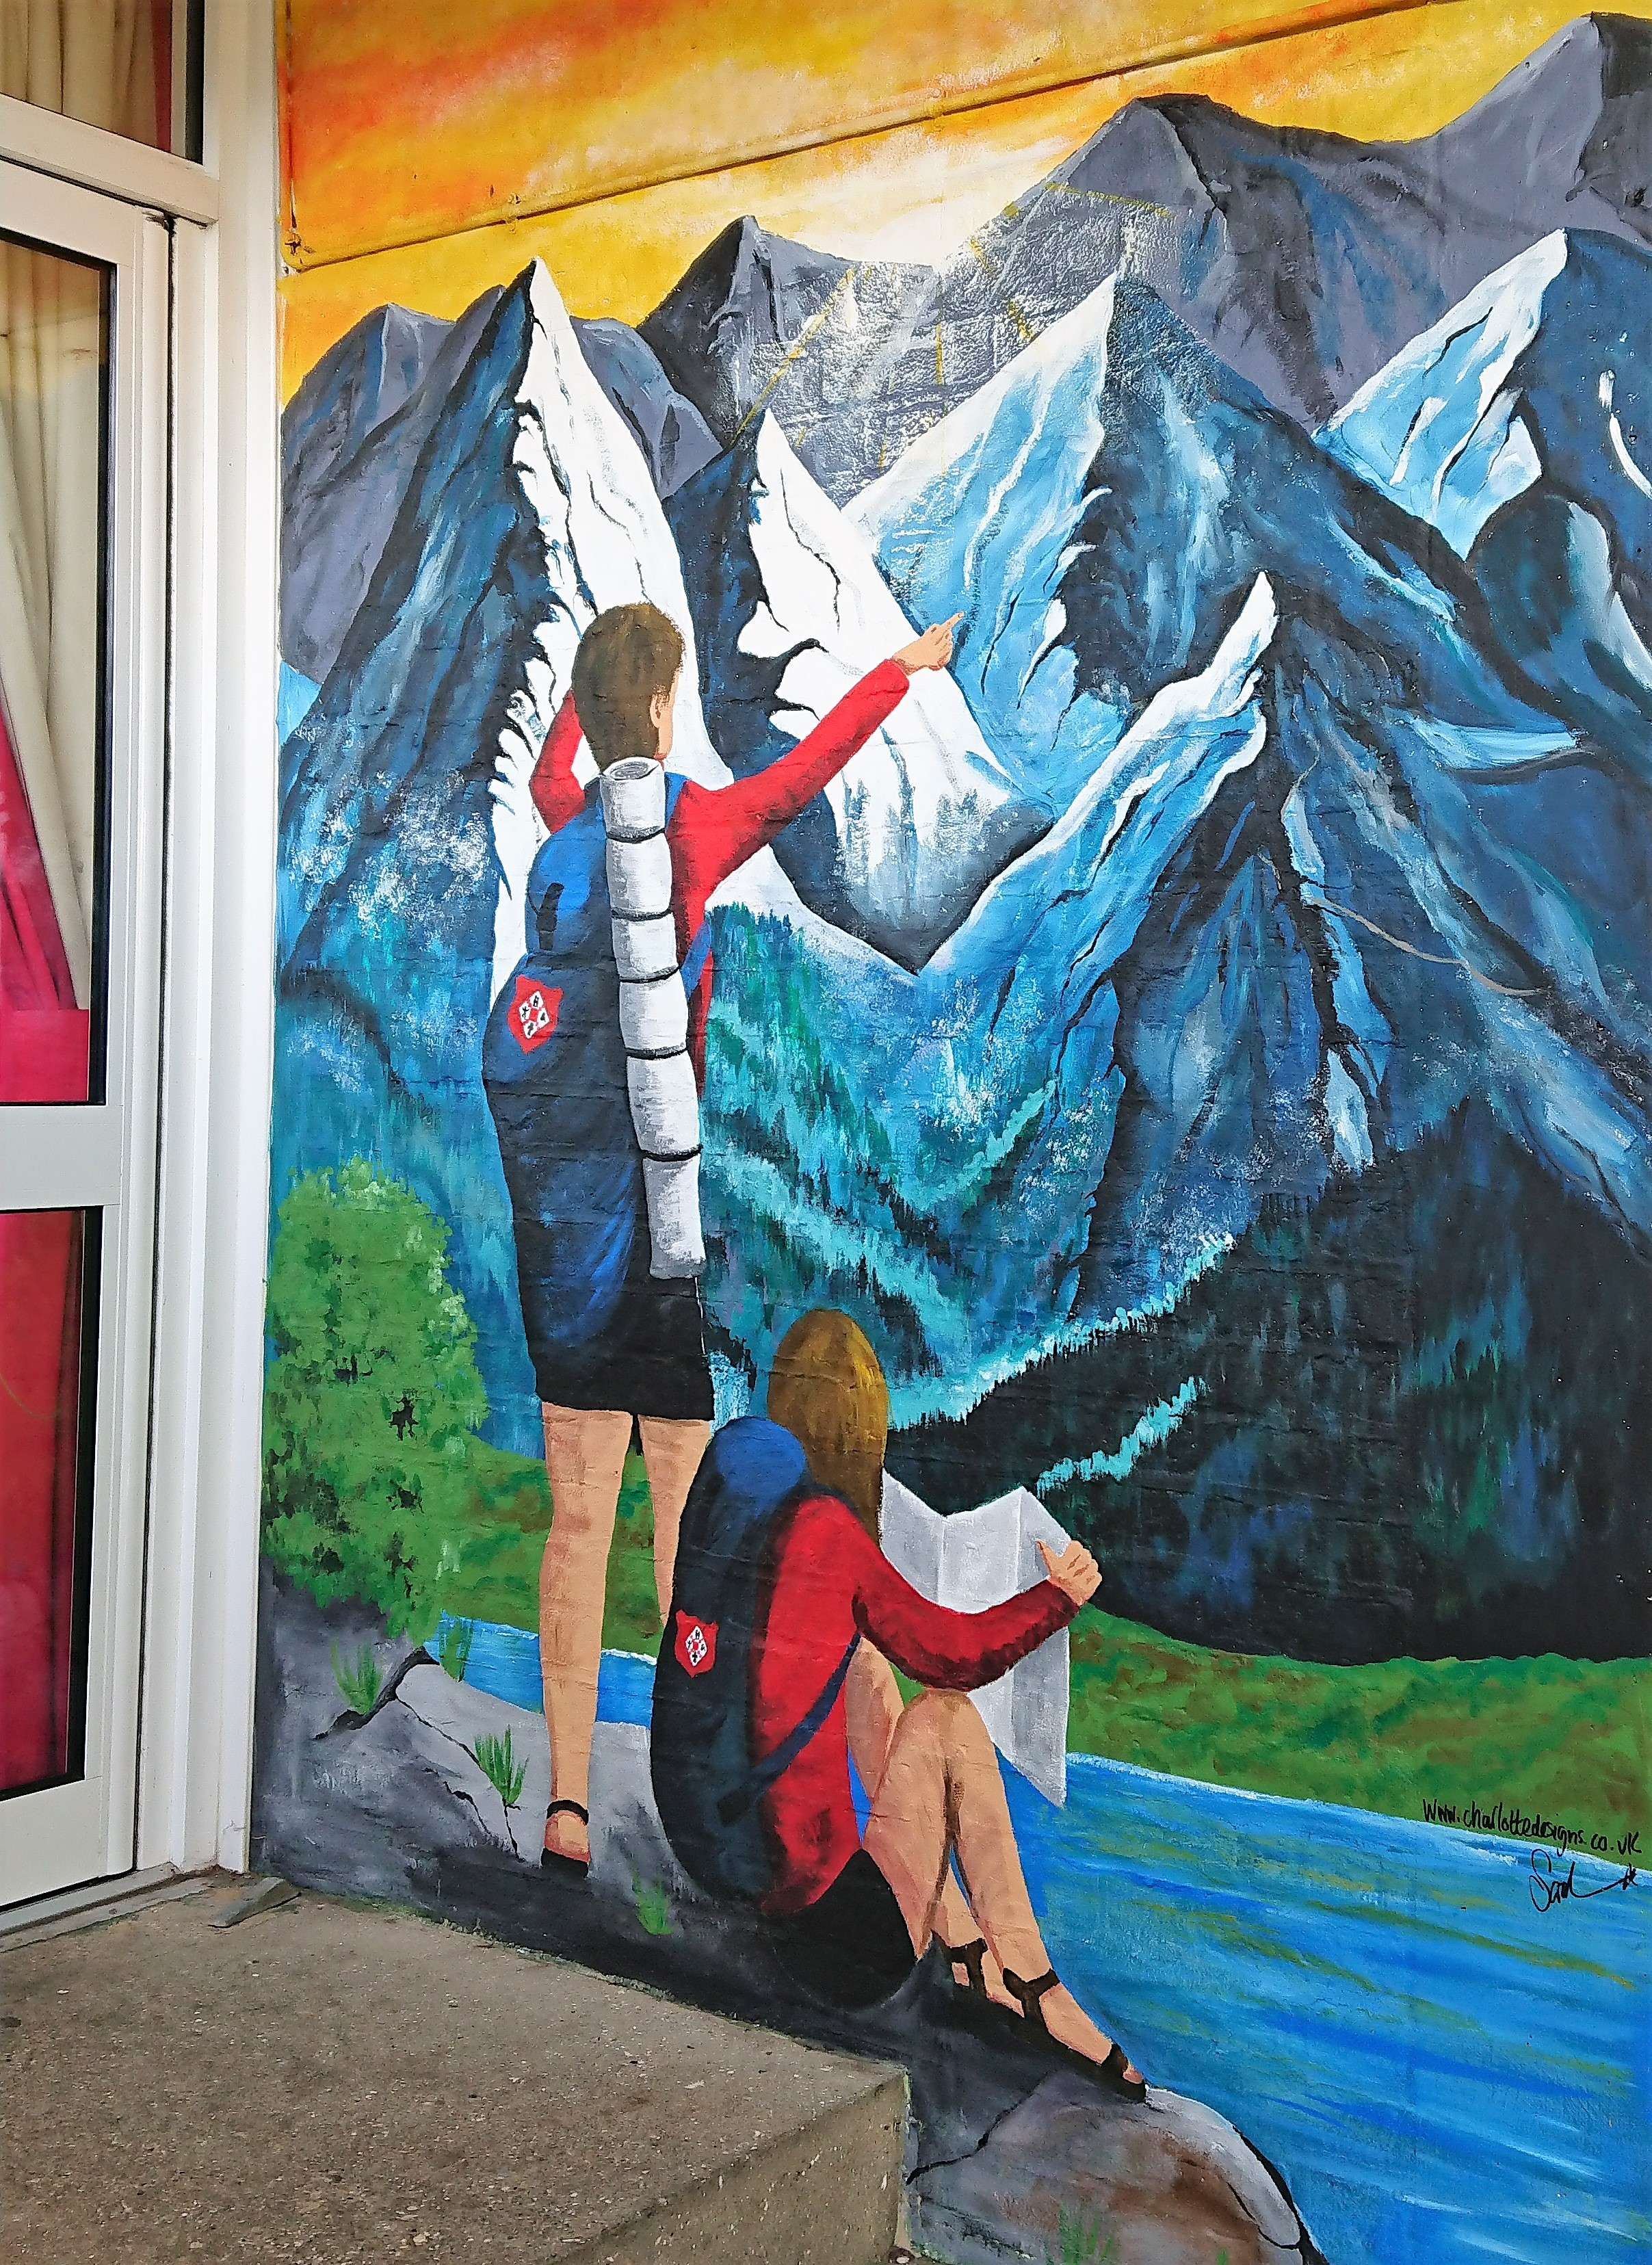 Image of mountain mural with children